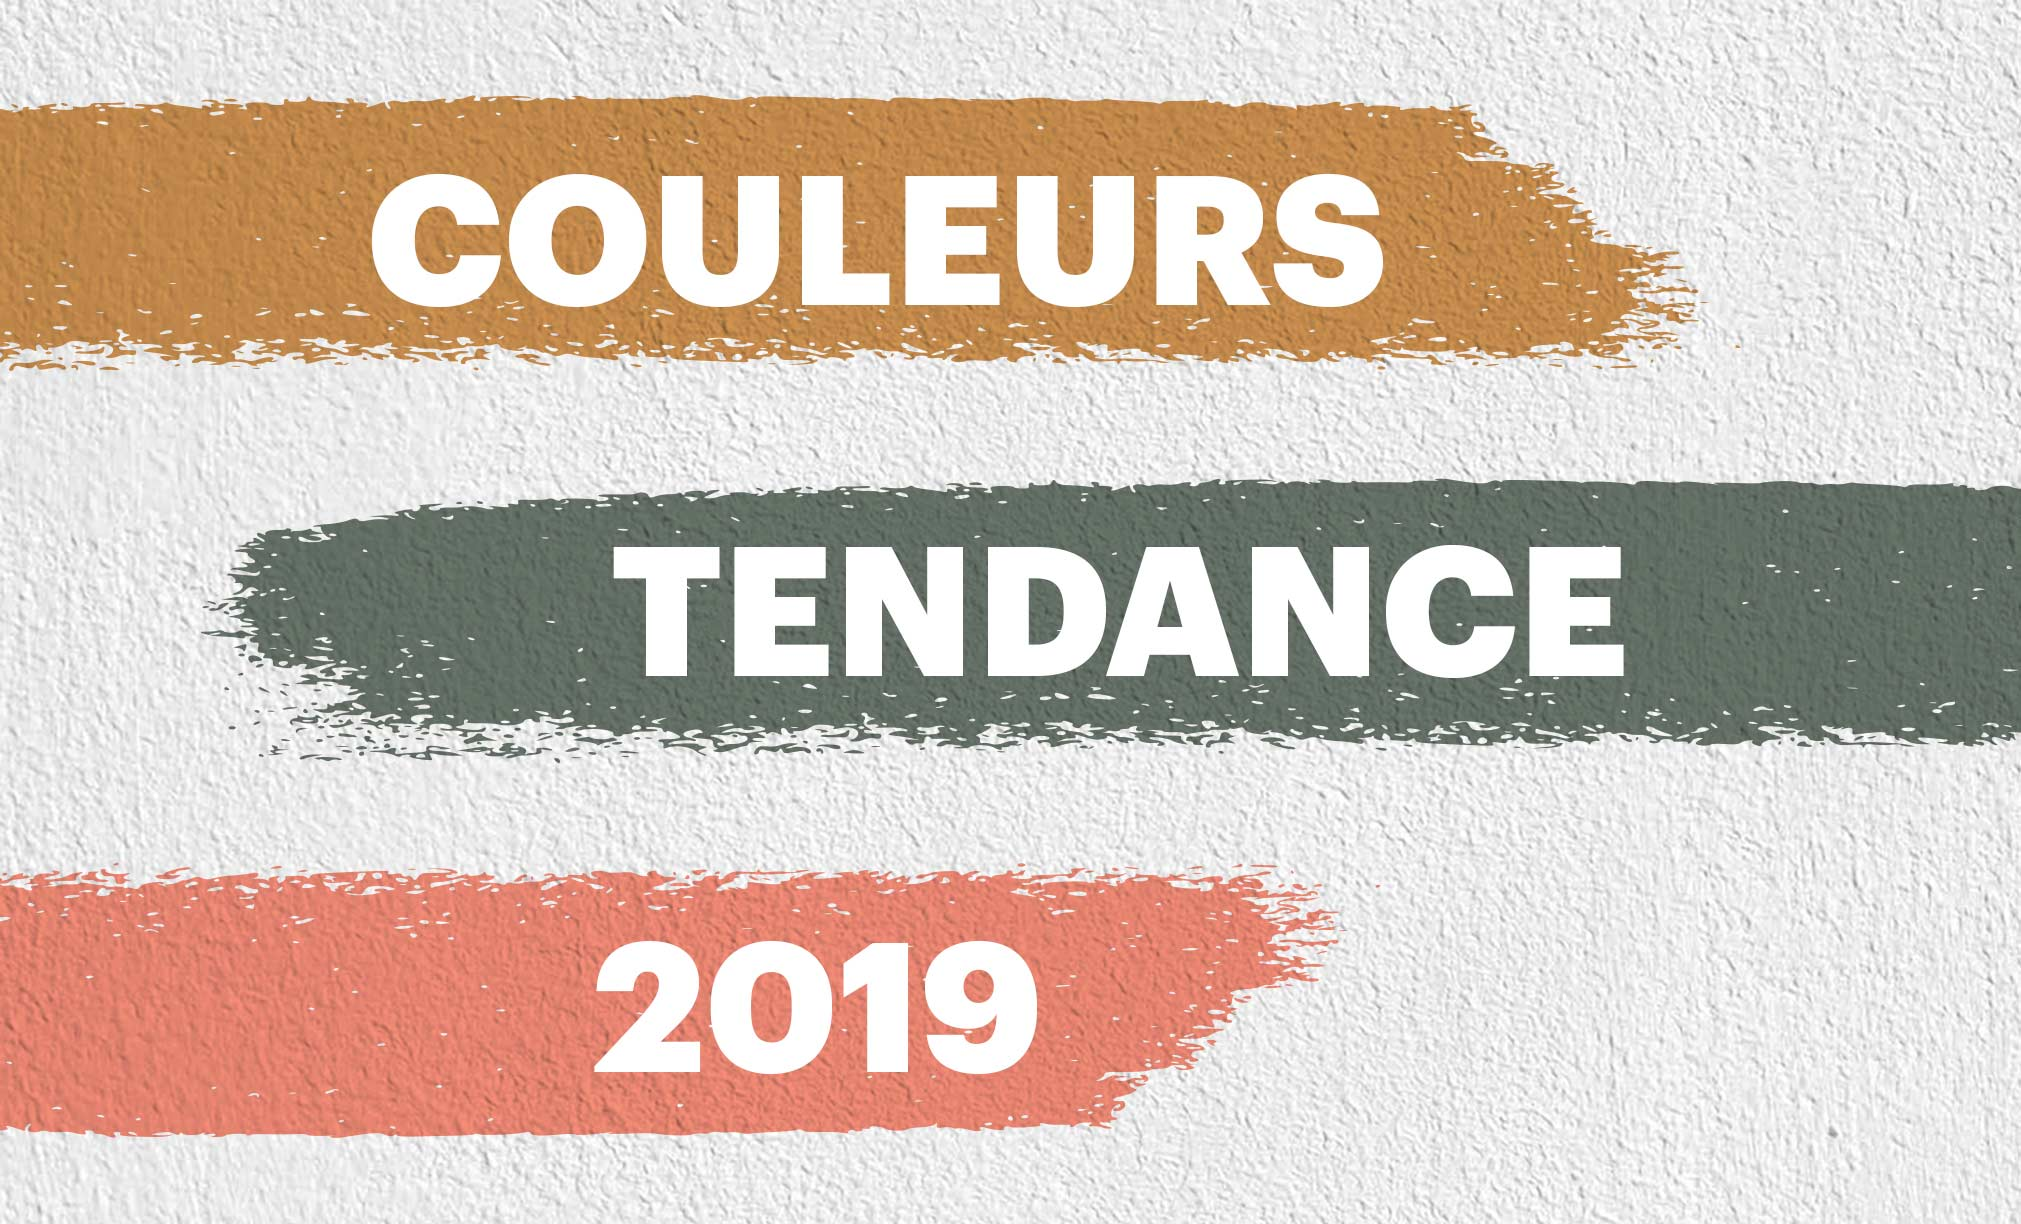 DMI_couleurs-tendeance_article_2